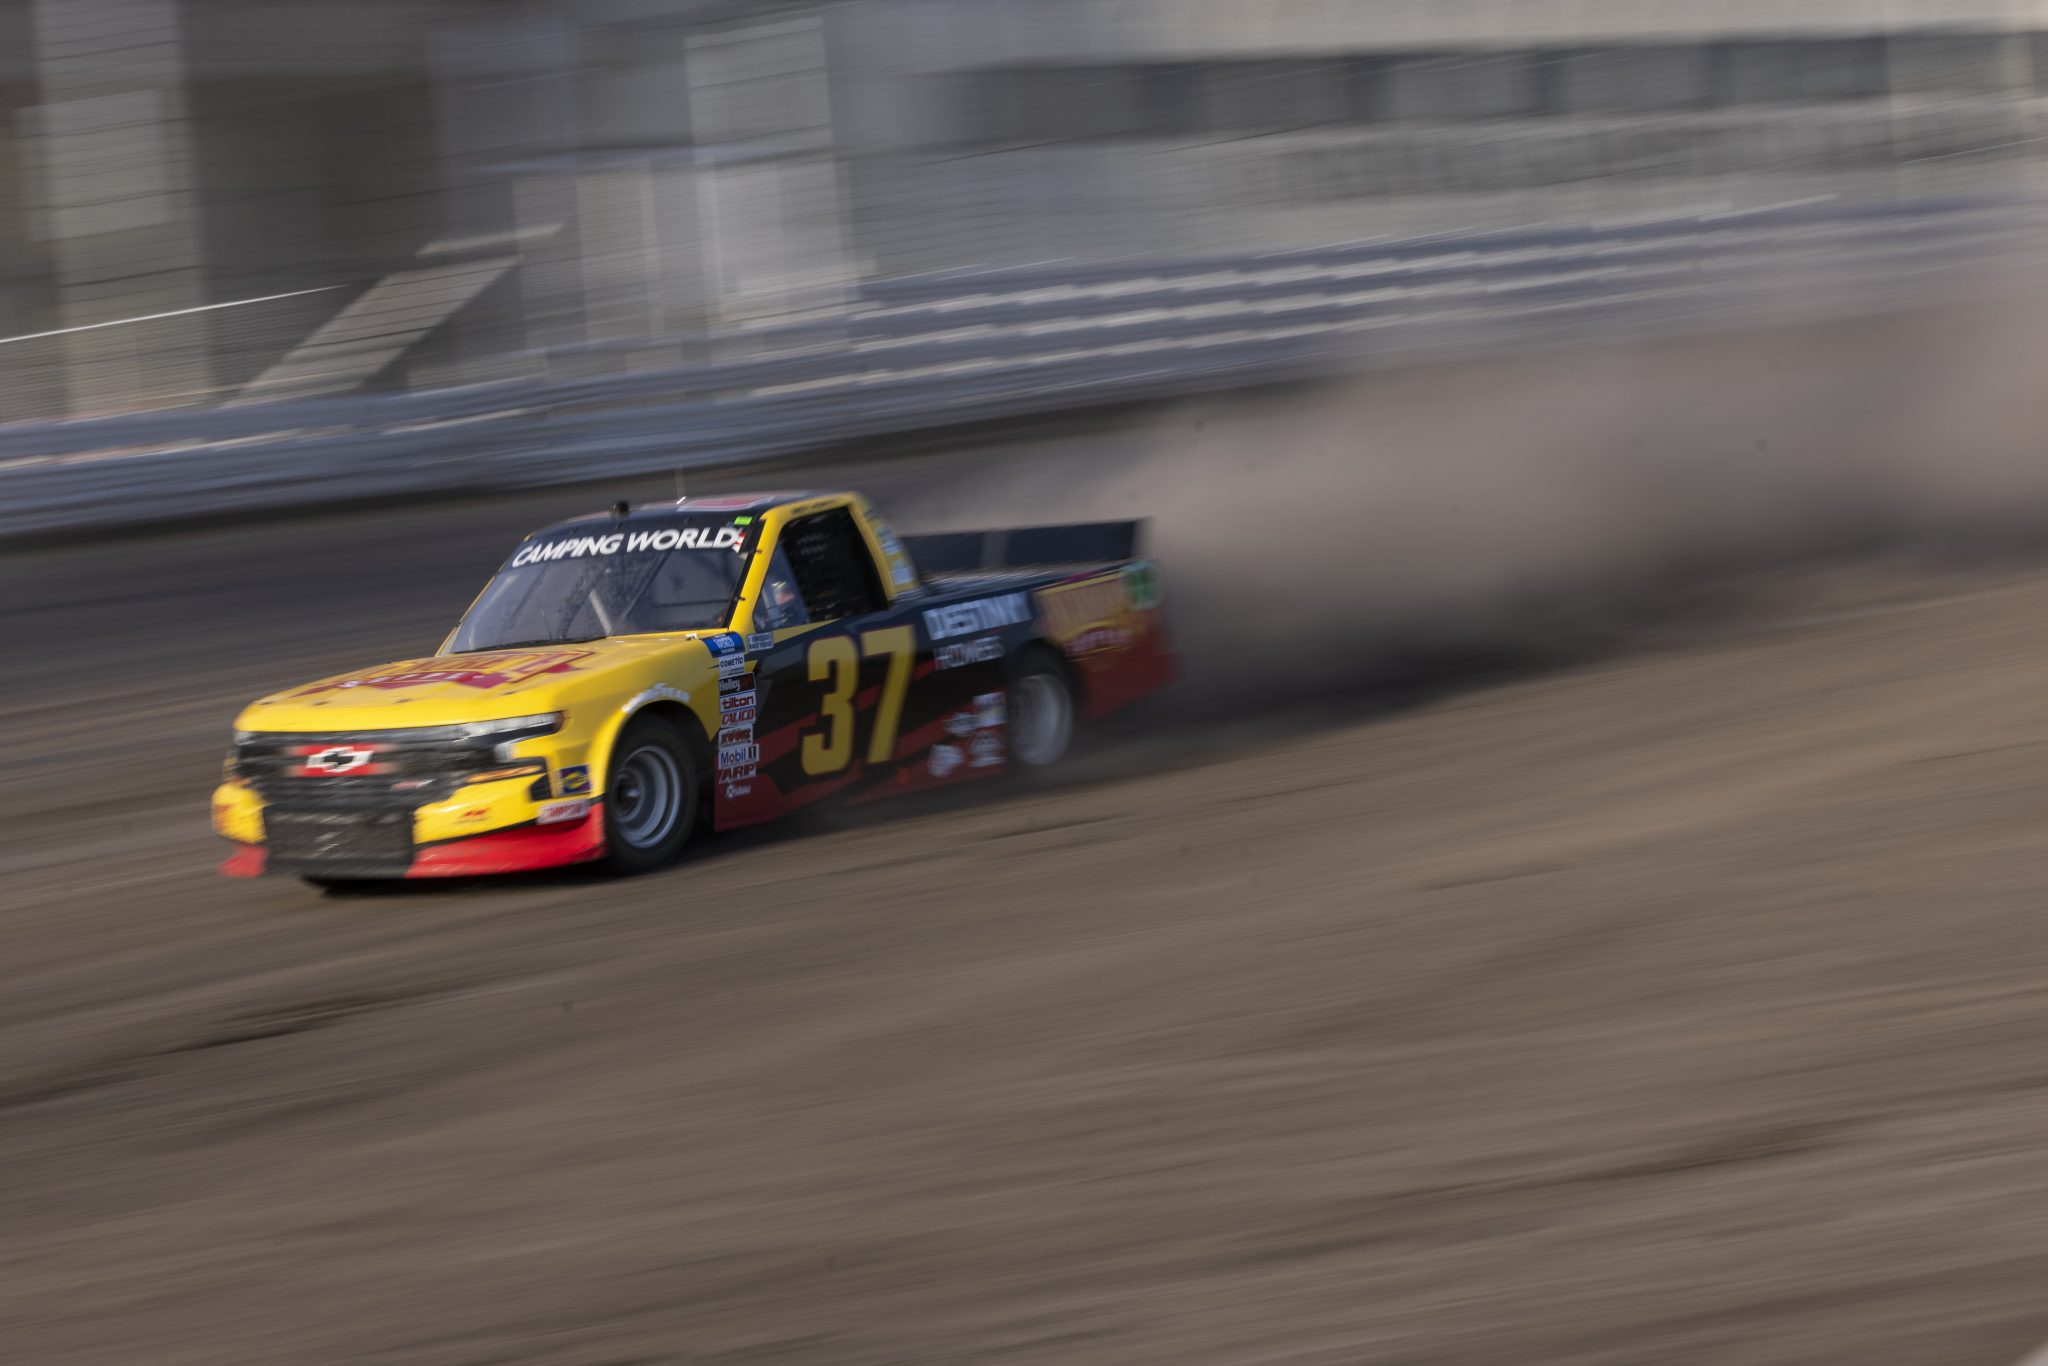 KNOXVILLE, IOWA - JULY 08: Brett Moffitt, driver of the #37 Concrete Supply/Destiny Homes Chevrolet, drives during practice for the NASCAR Camping World Truck Series Corn Belt 150 presented by Premier Chevy Dealers at Knoxville Raceway on July 08, 2021 in Knoxville, Iowa. (Photo by James Gilbert/Getty Images) | Getty Images